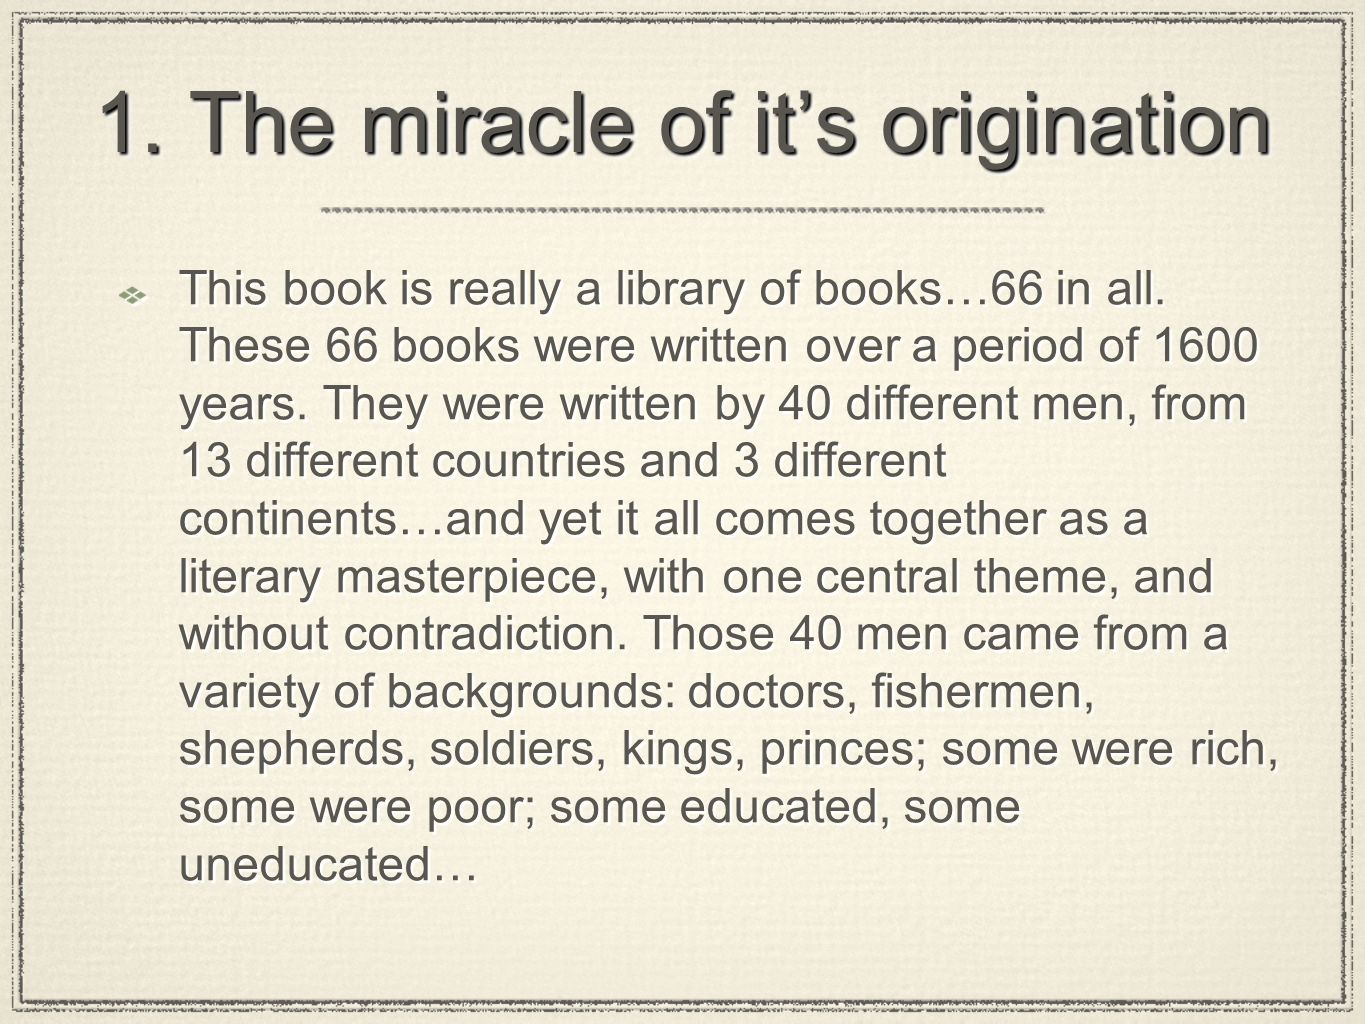 1. The miracle of its origination This book is really a library of books…66 in all. These 66 books were written over a period of 1600 years. They were